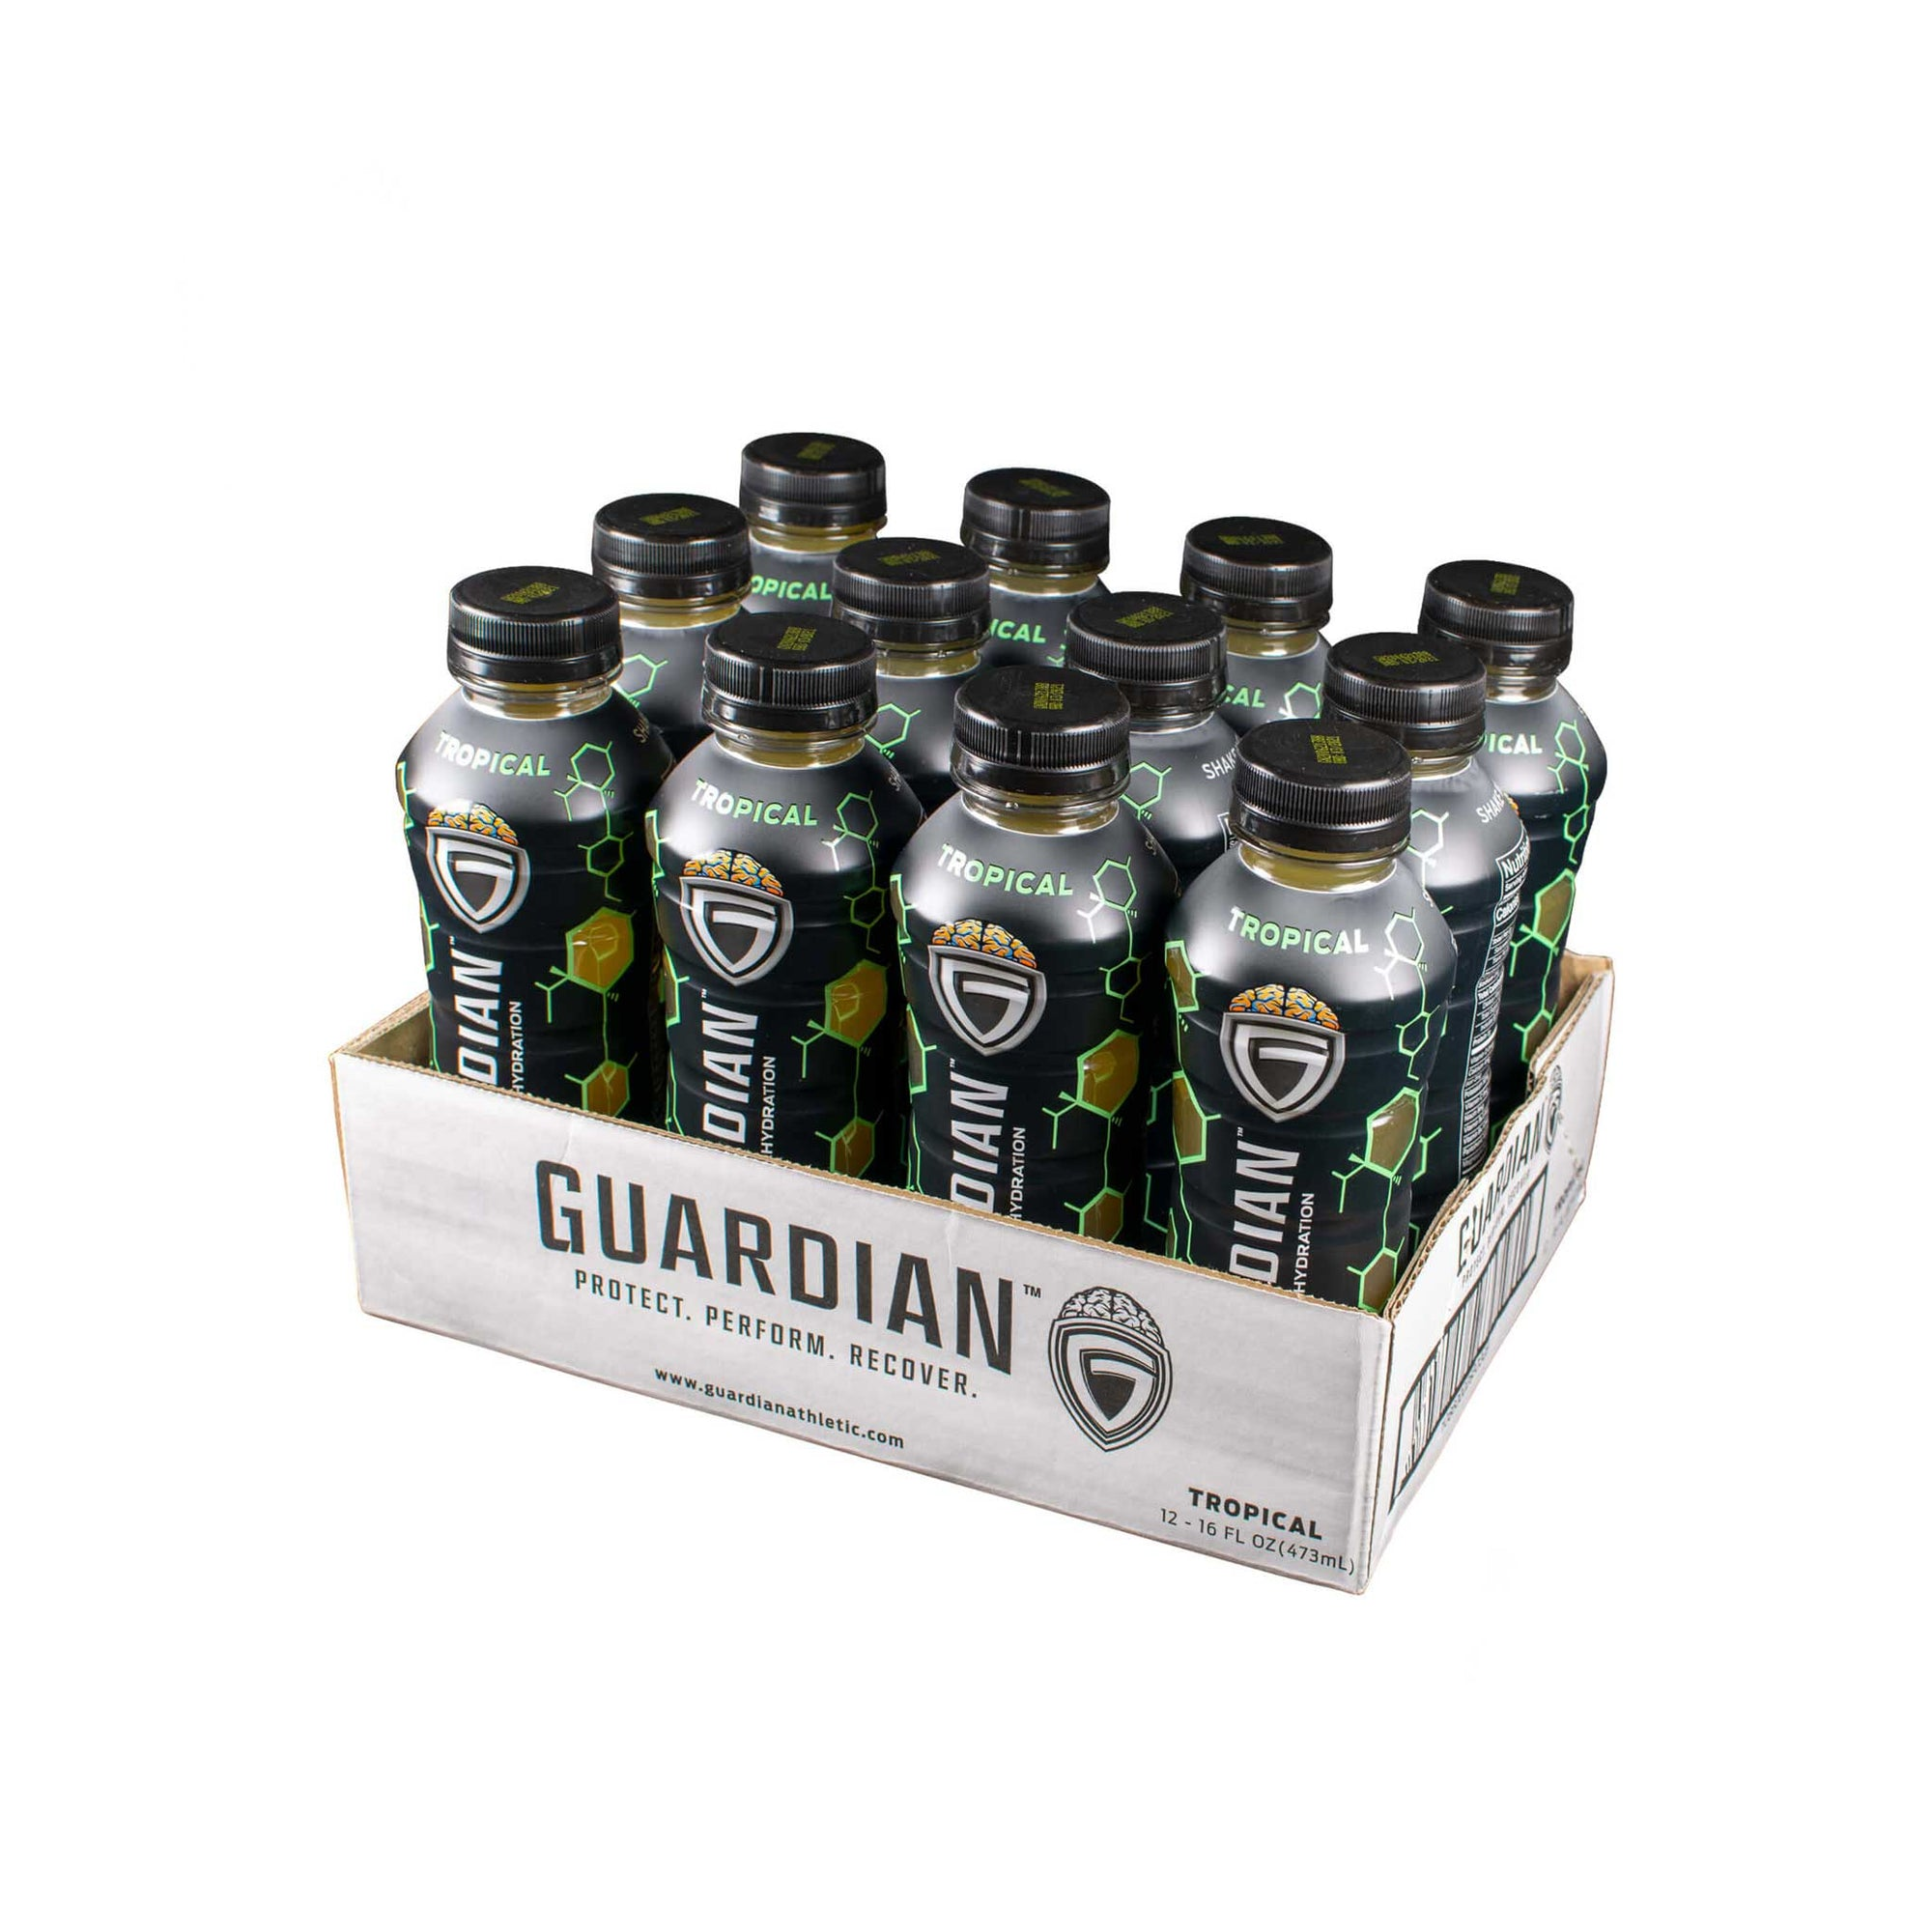 Guardian Athletic Rehydration Tropical 12 Pack